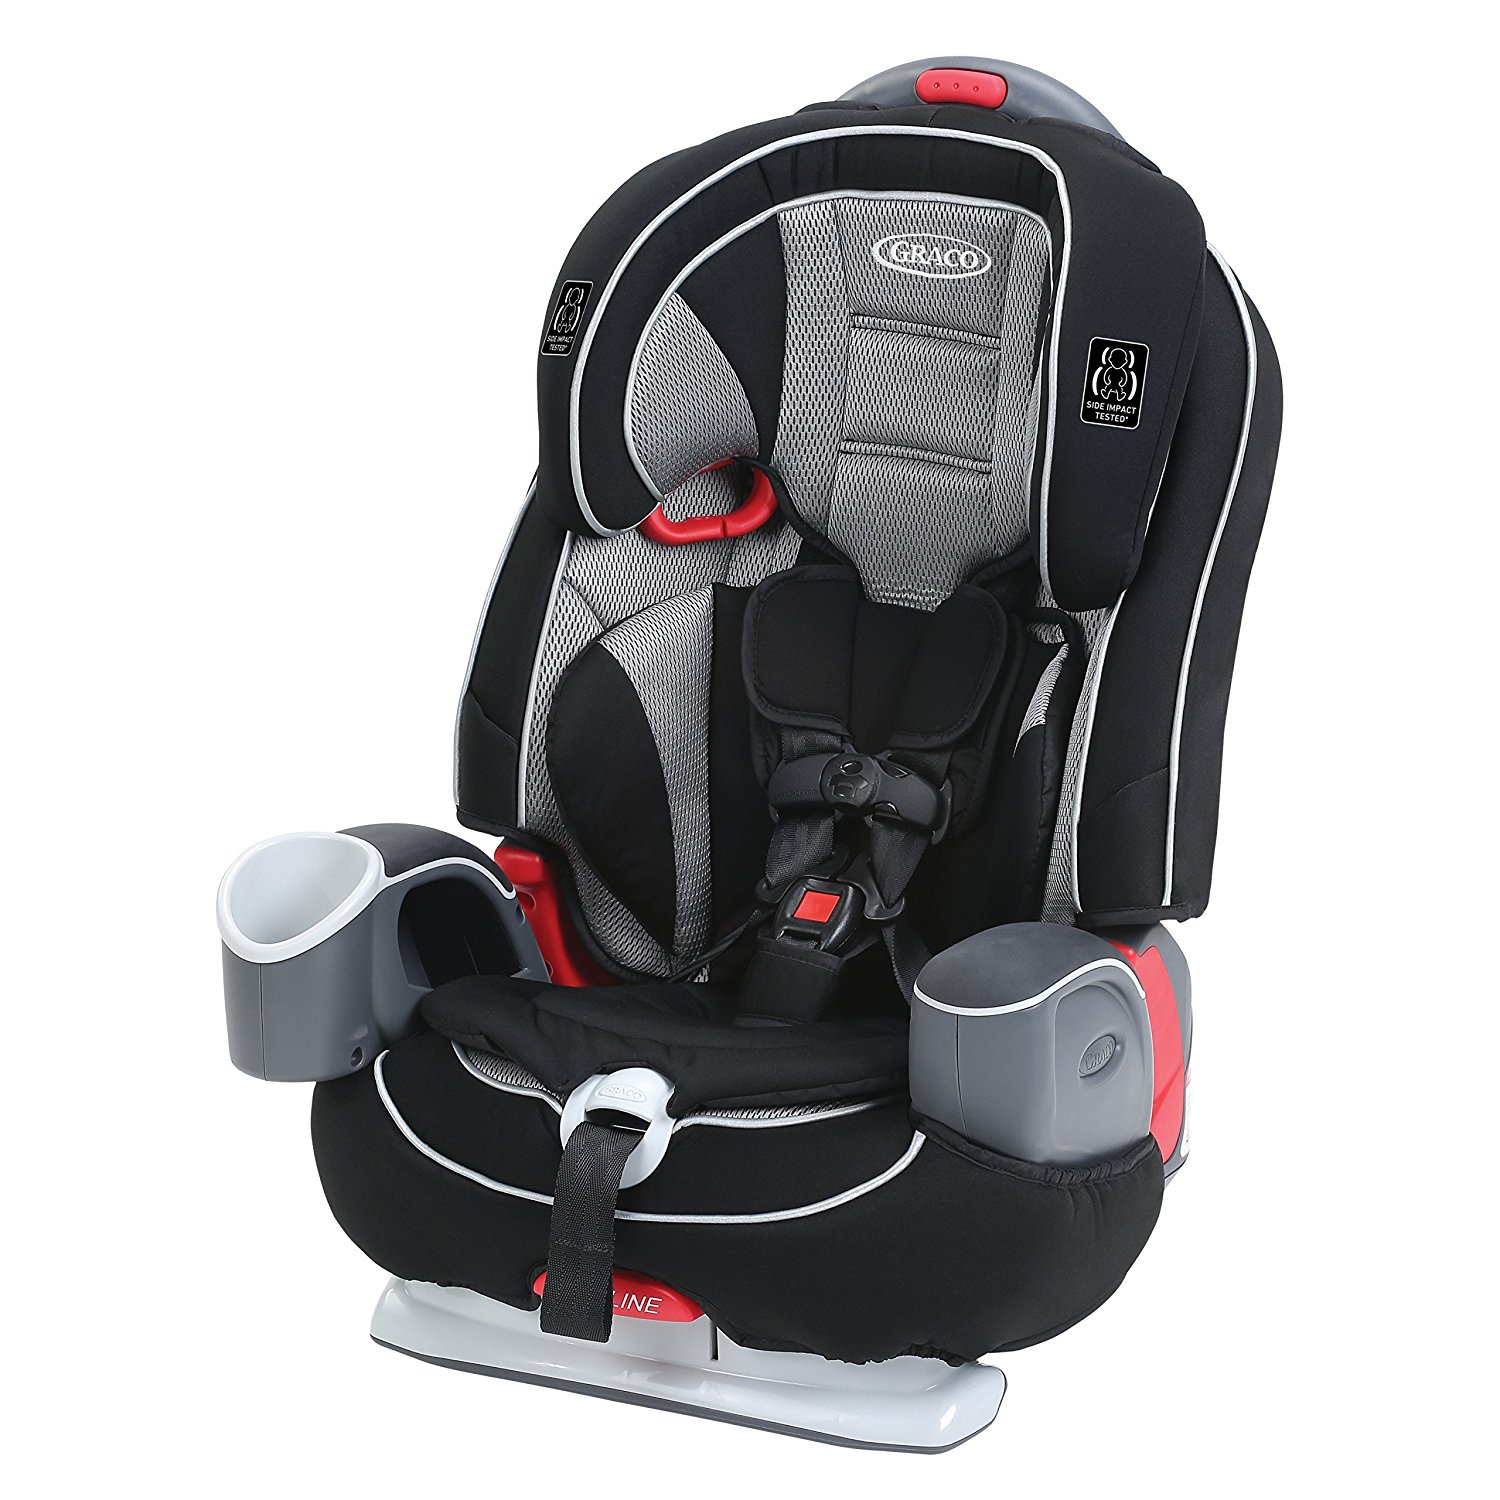 graco nautilus 65 lx 3-in-1 harness booster, high back booster seat, best high back booster seat, child safety seat, booster seat for cars, best booster seat for cars